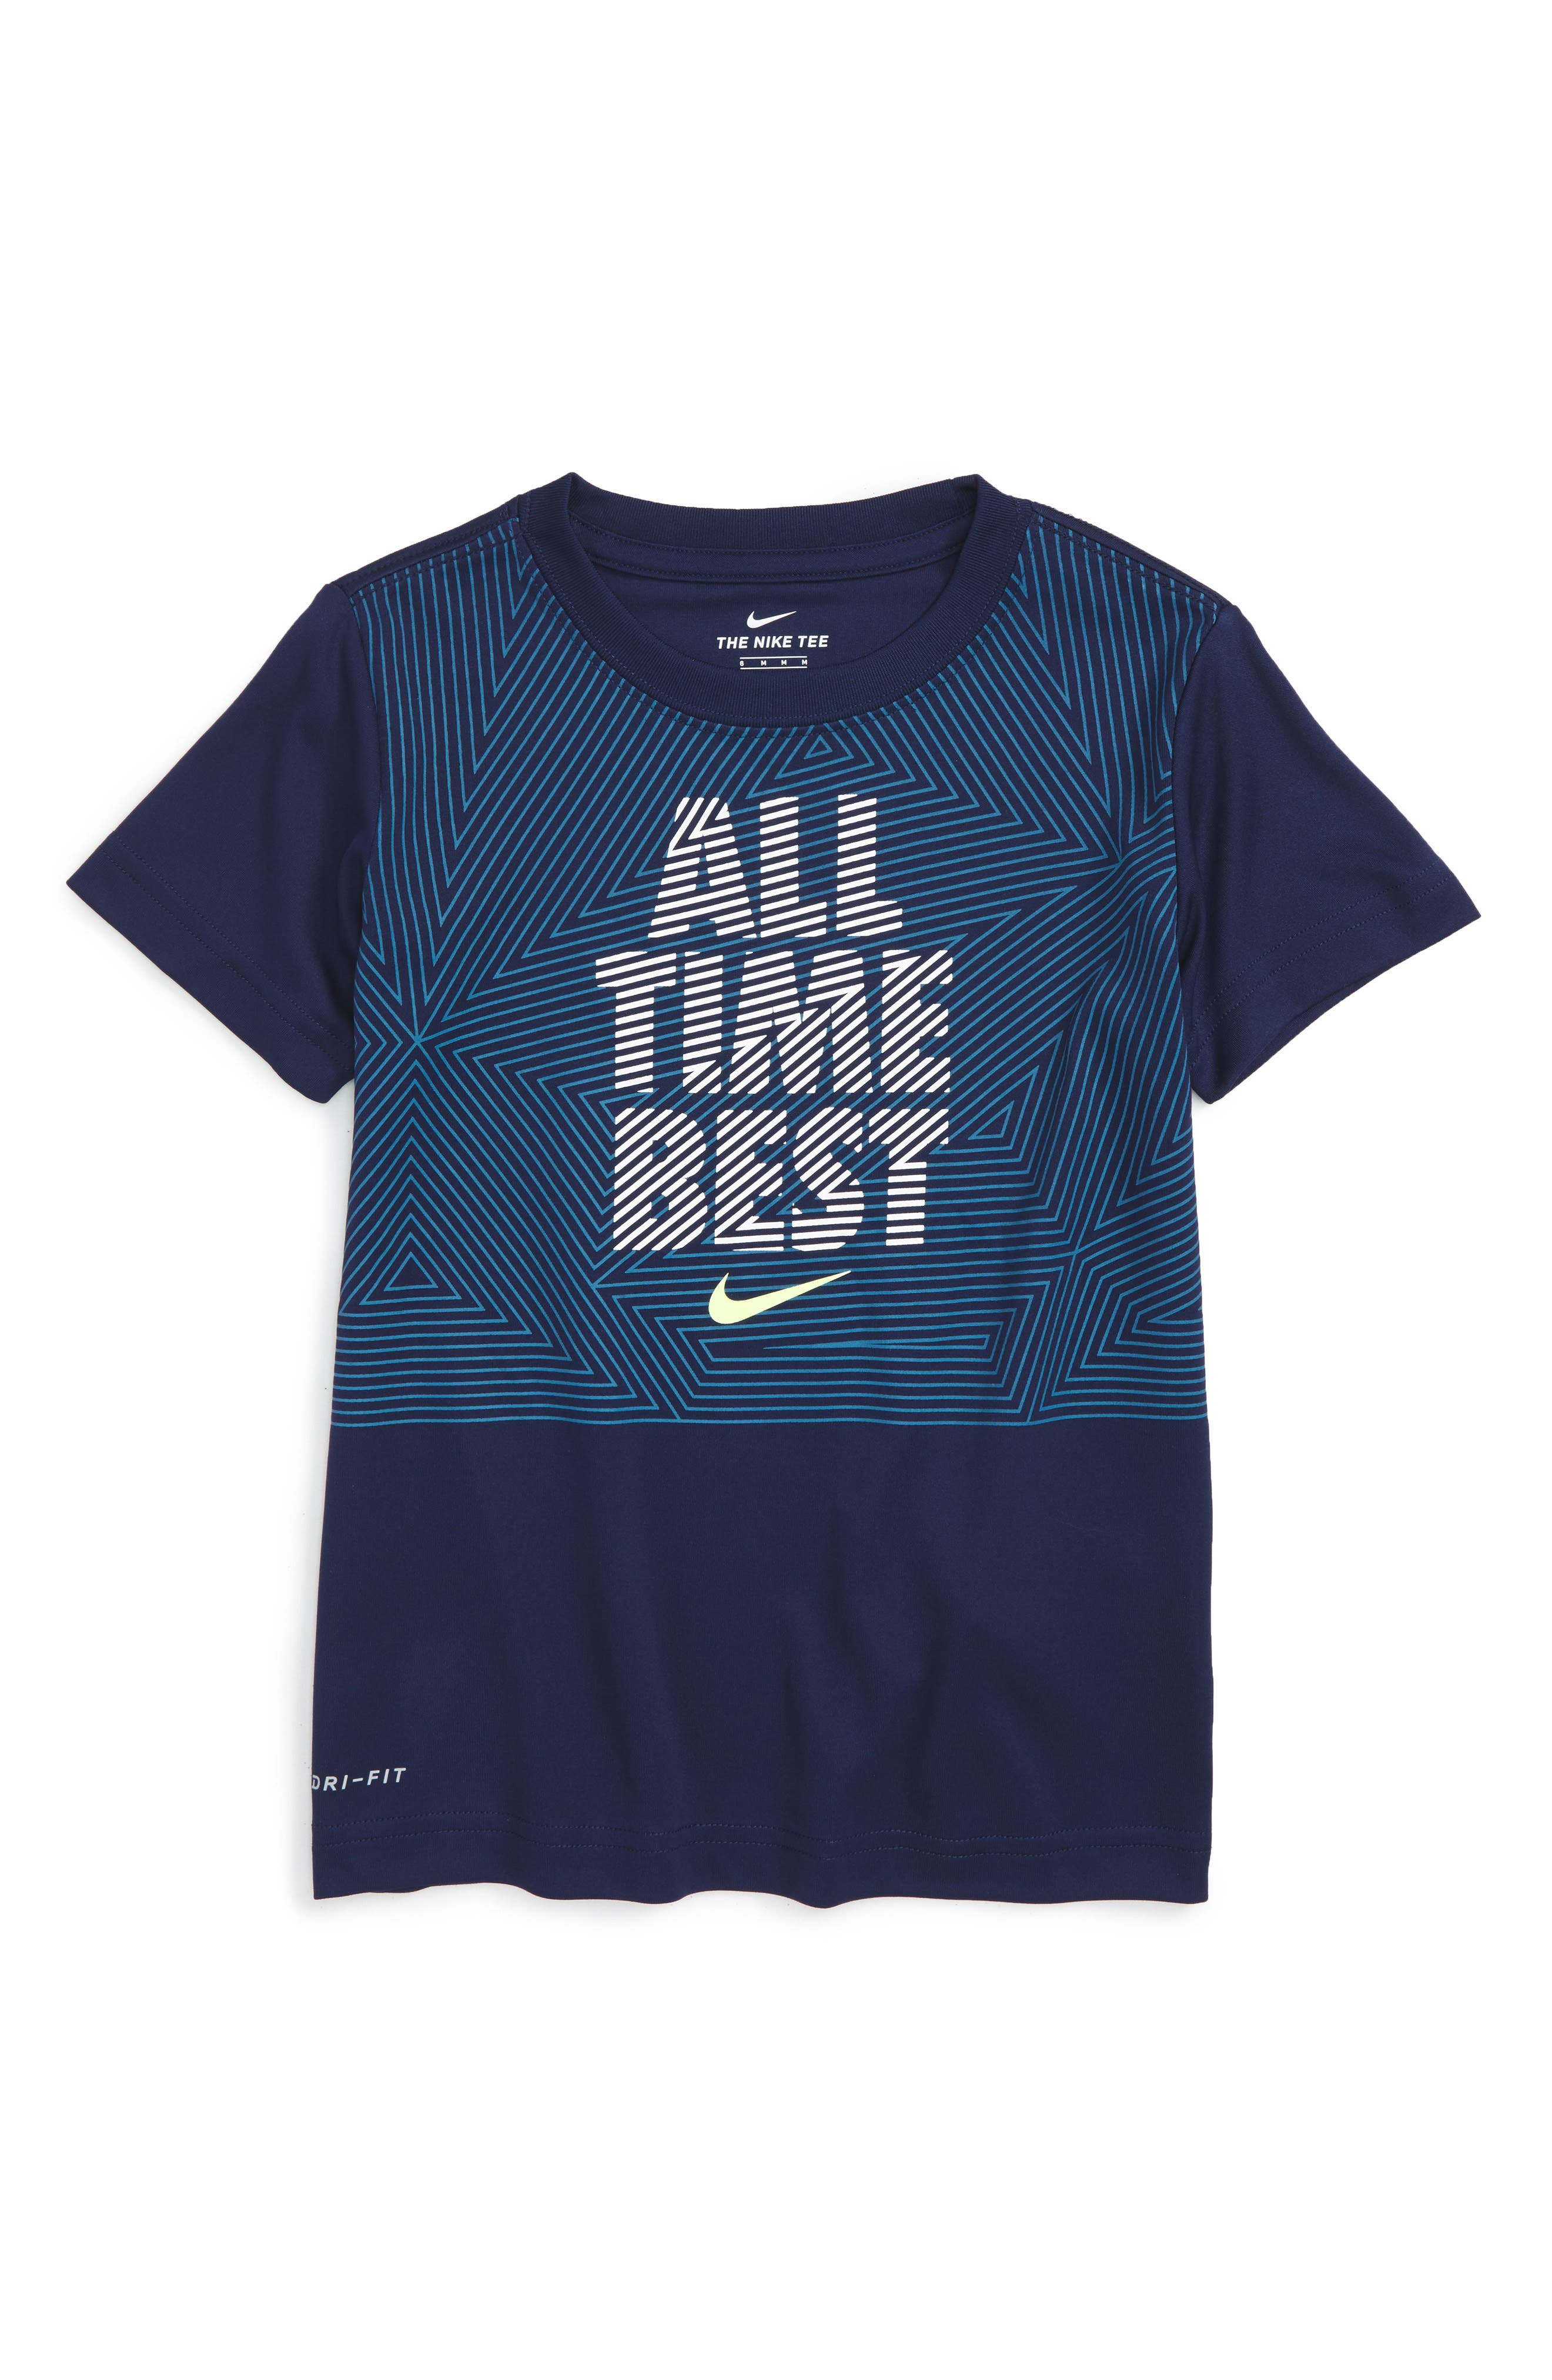 Nike All Time Best Graphic T-Shirt (Toddler Boys & Little Boys)